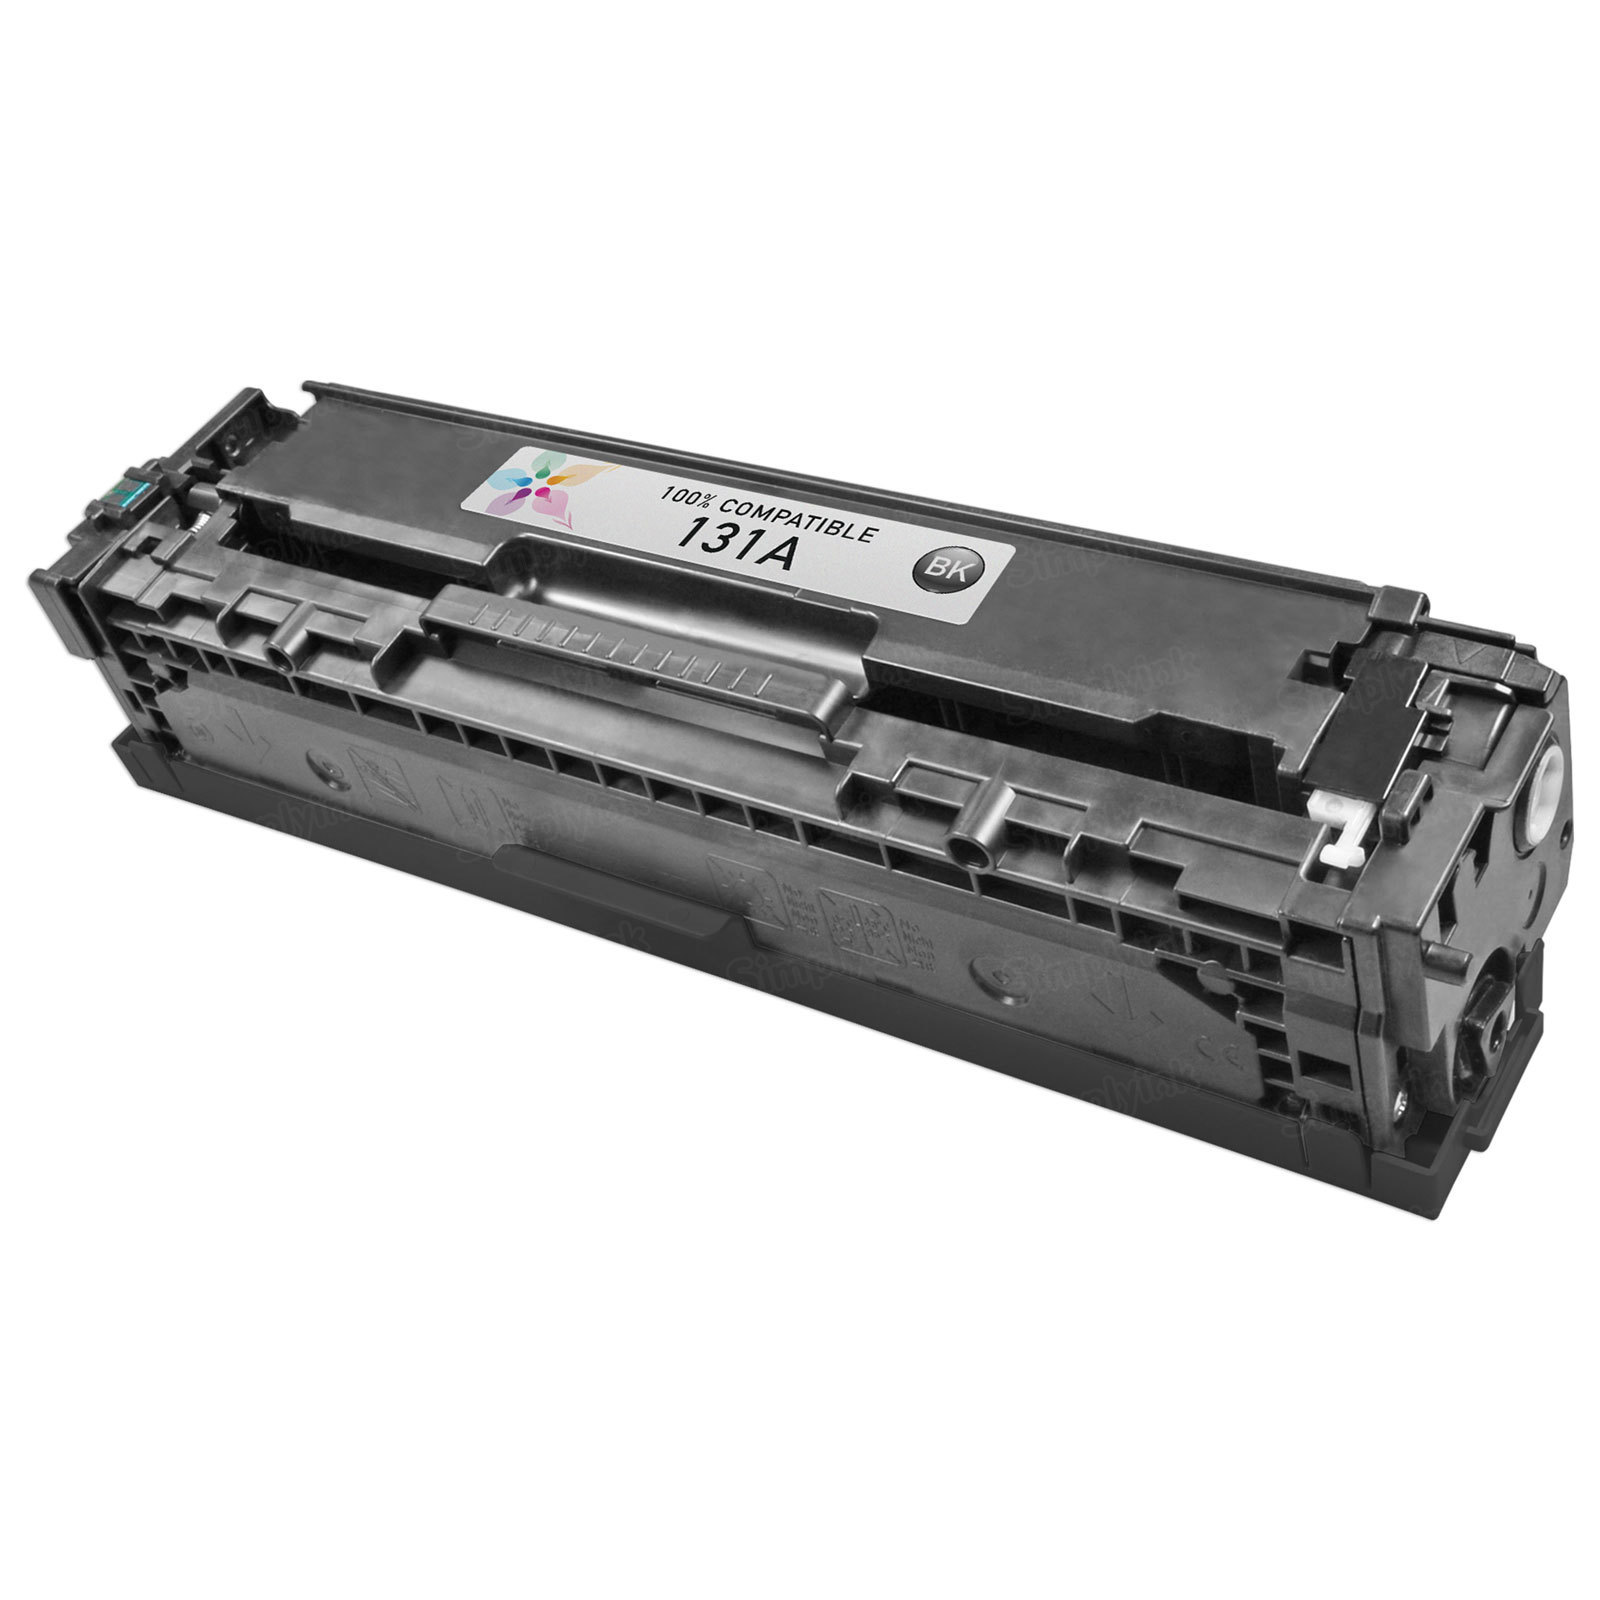 Remanufactured Replacement Black Laser Toner for HP 131A